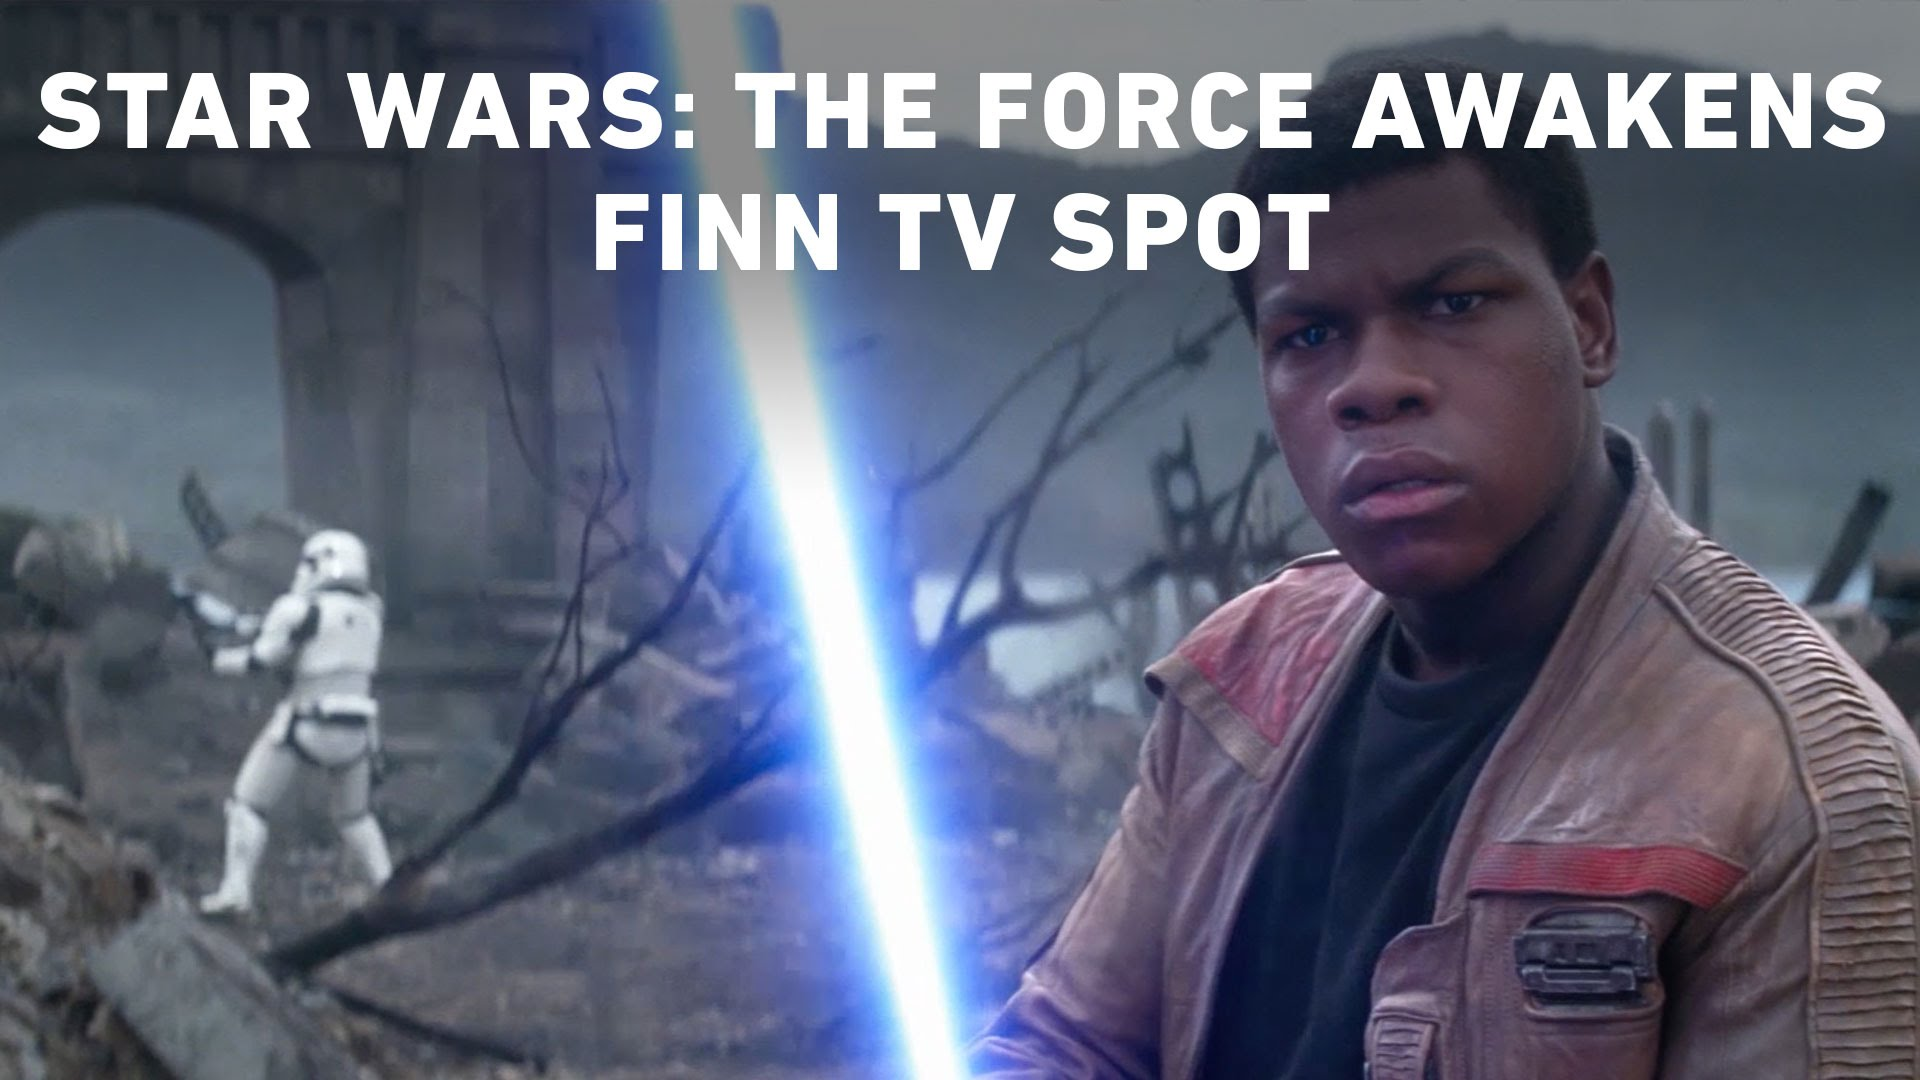 Star Wars: The Force Awakens Finn TV Spot (Official)